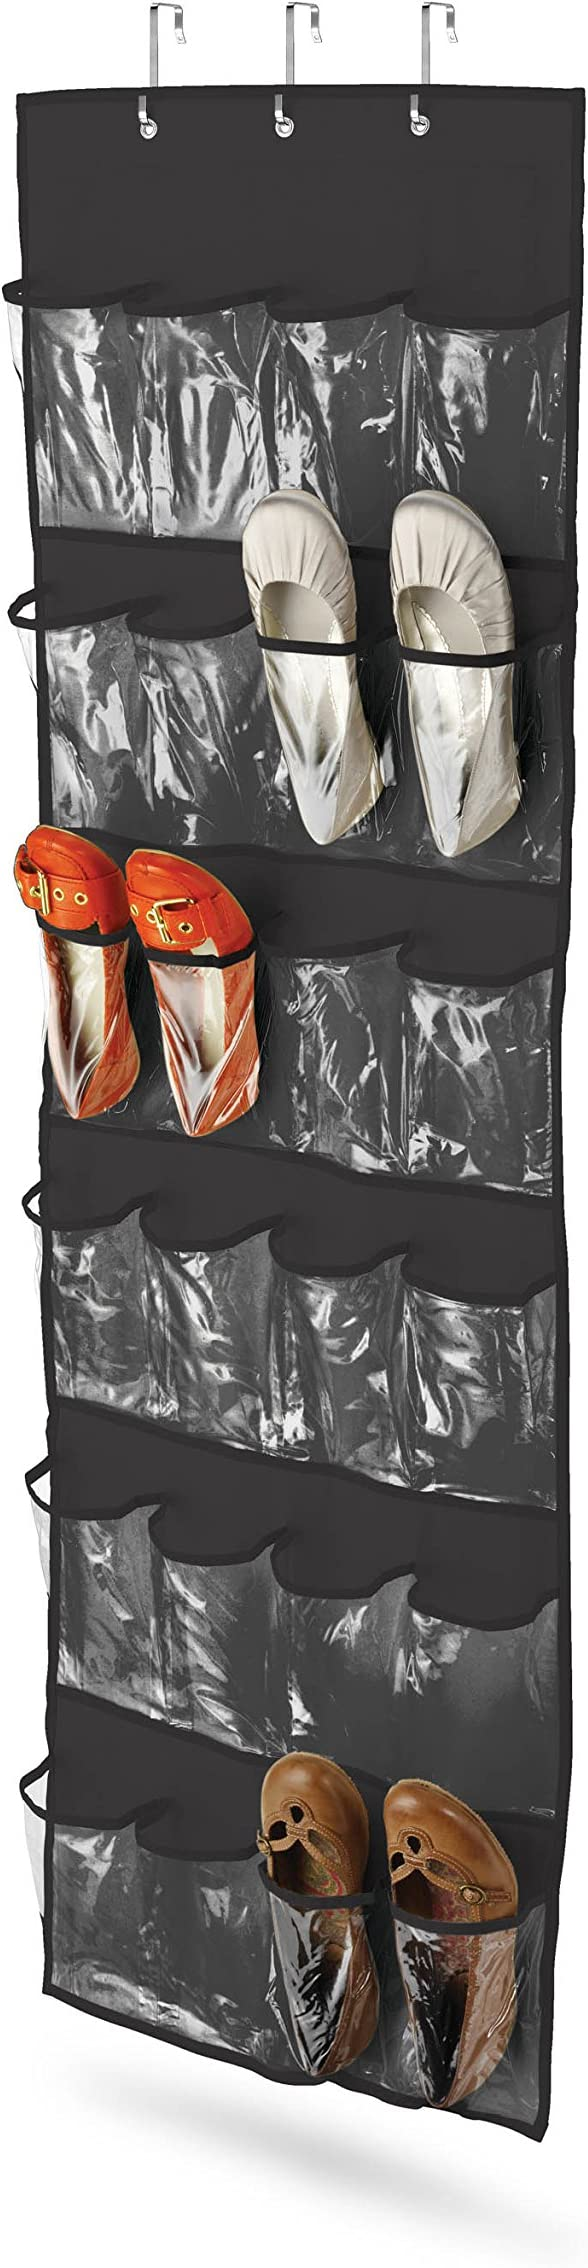 Black Honey-Can-Do SFT-01249 Over The Door Clear Shoe Organizer//Storage Rack